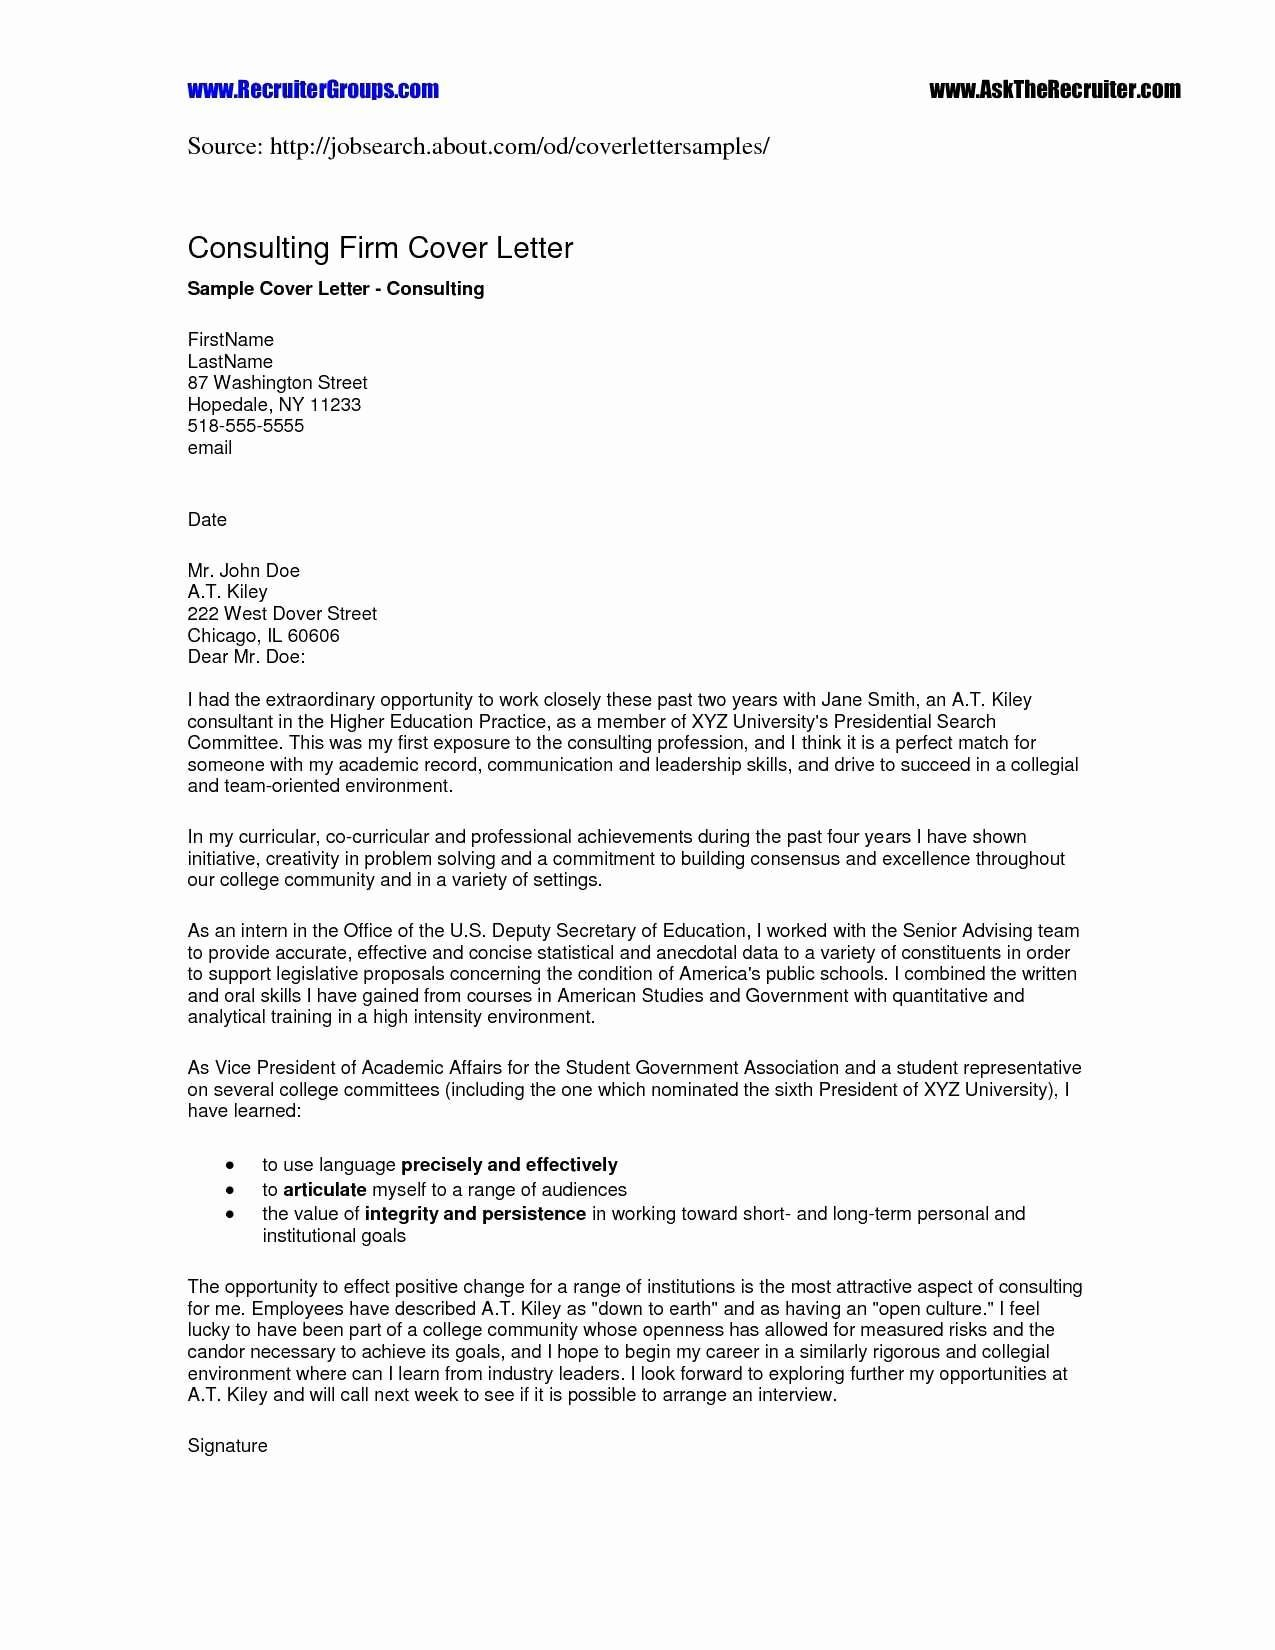 open office cover letter template free example-Free Open fice Resume Templates New Resume Template Open Fice Free Unique Open Fice Calc Templates 20-i